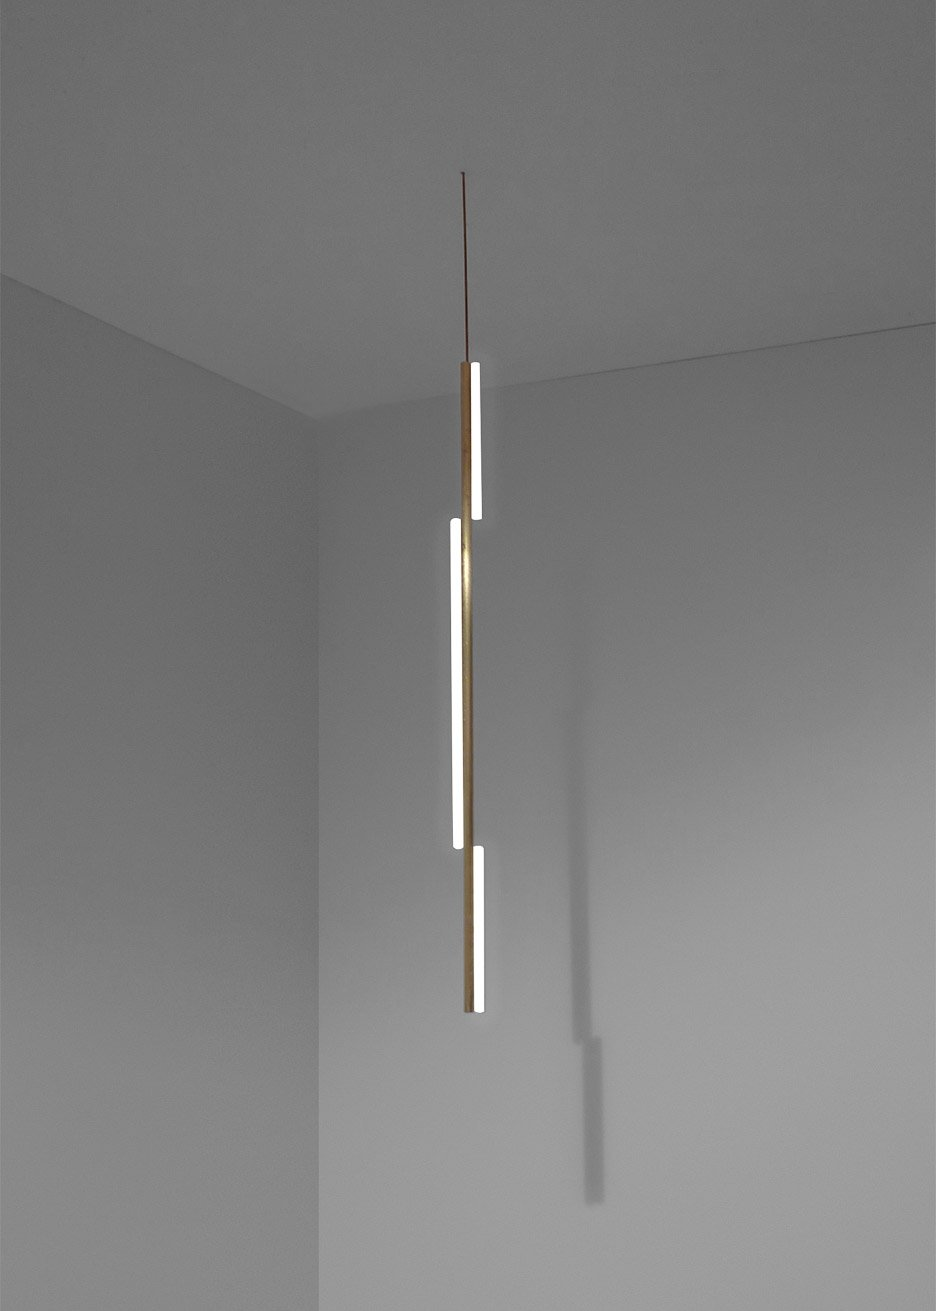 Brass lighting by Michael Anastassiades for One Well Known Sequence Exhibition